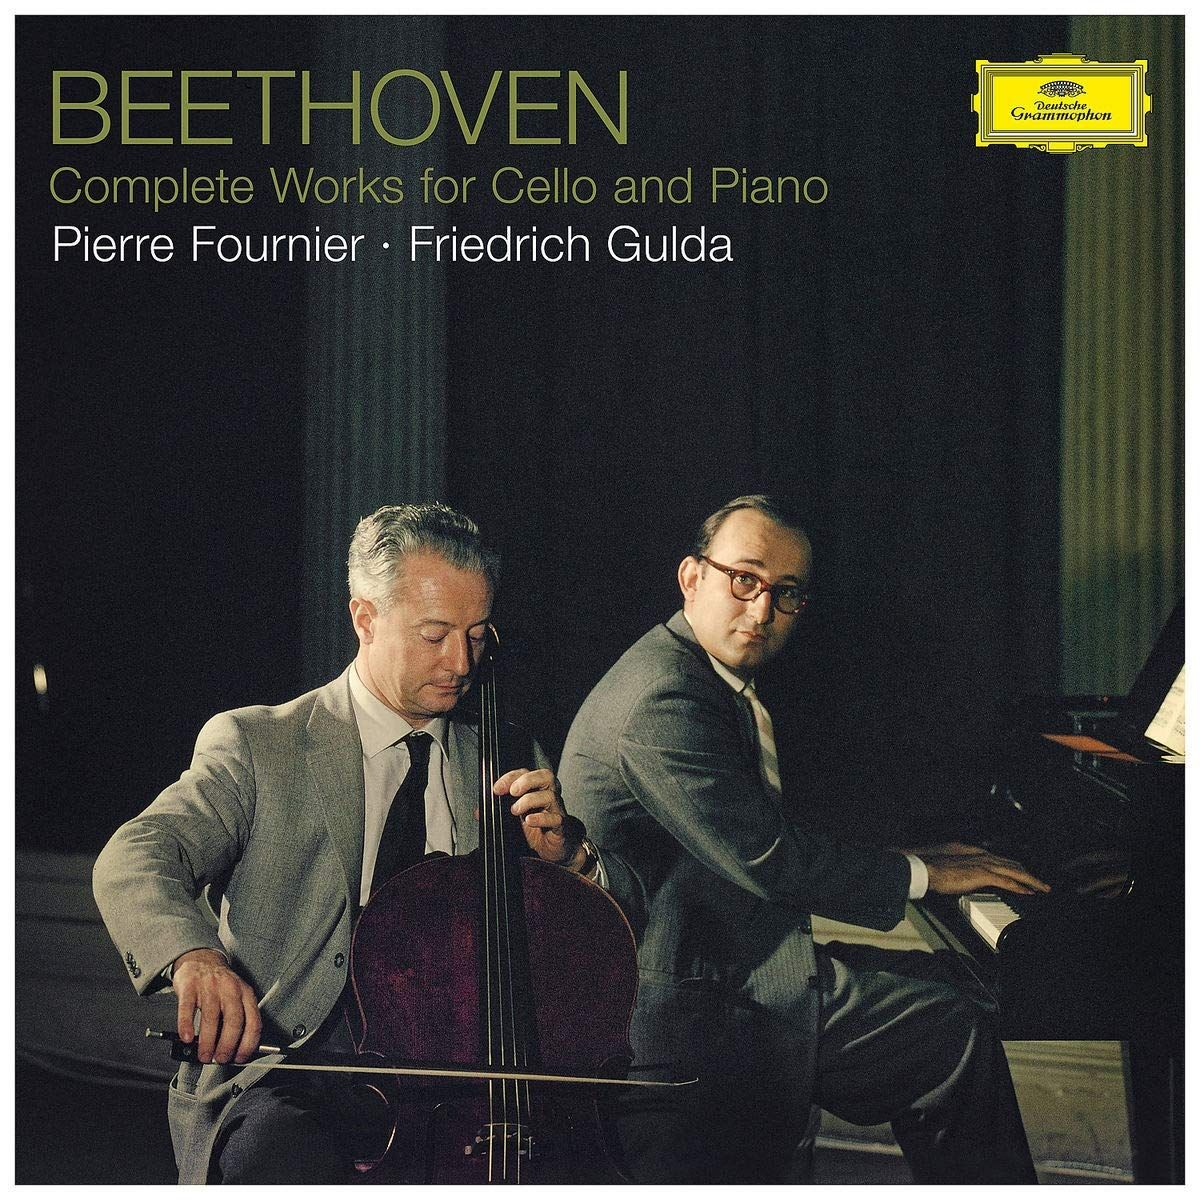 Beethoven: Complete Works for Cello & Piano [Limited Edition]